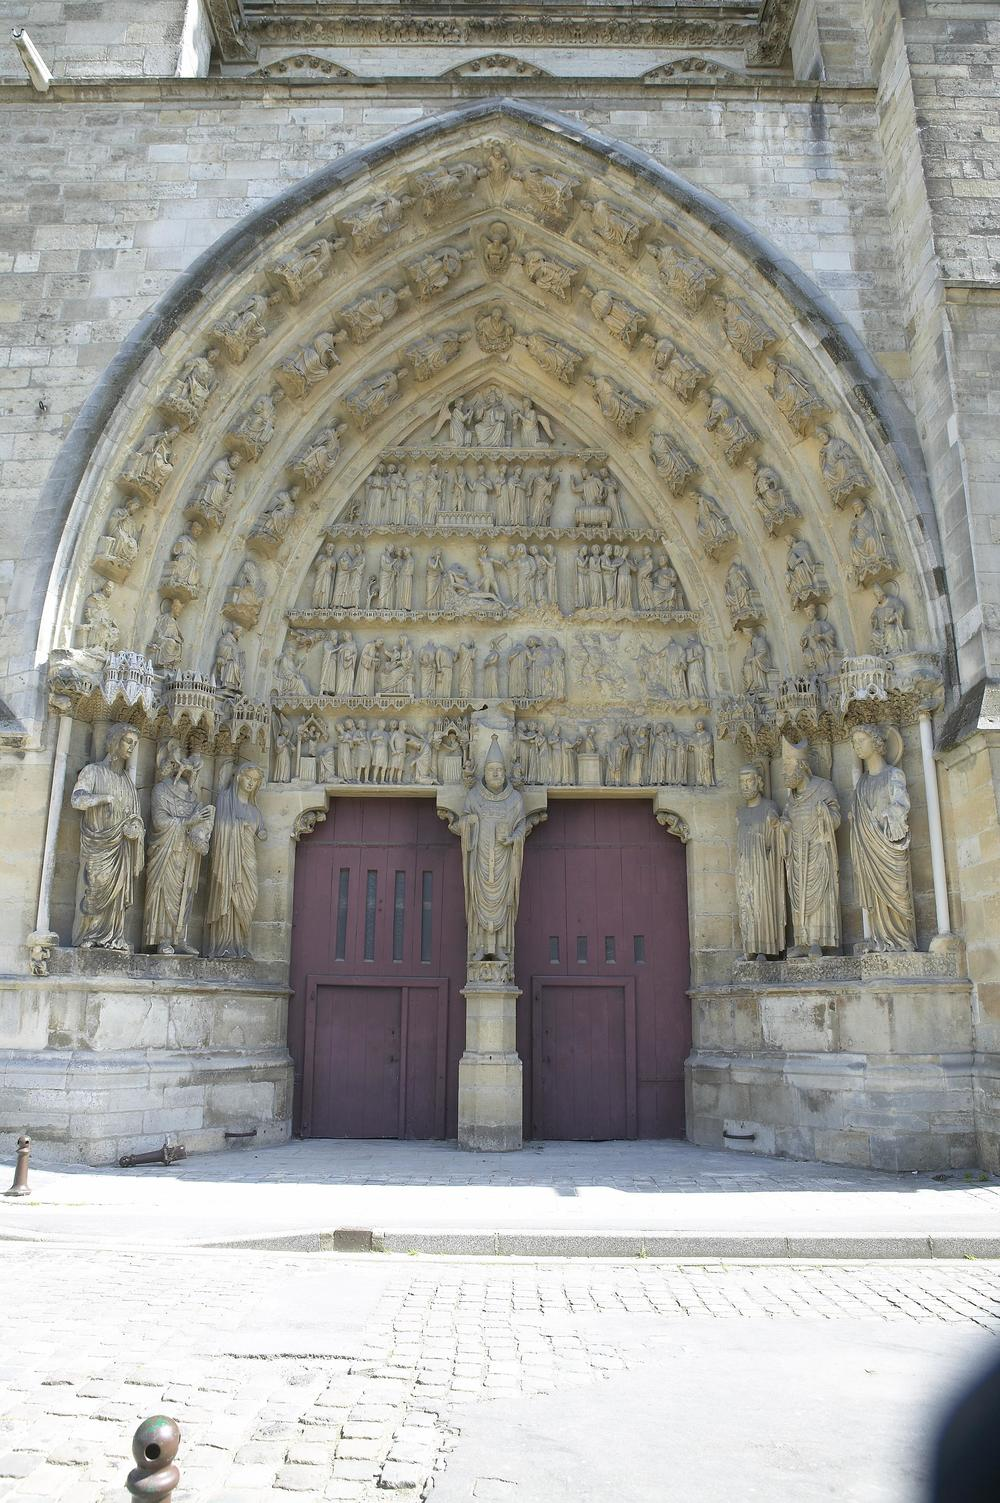 Saints' Portal, North Transept, Reims Cathedral